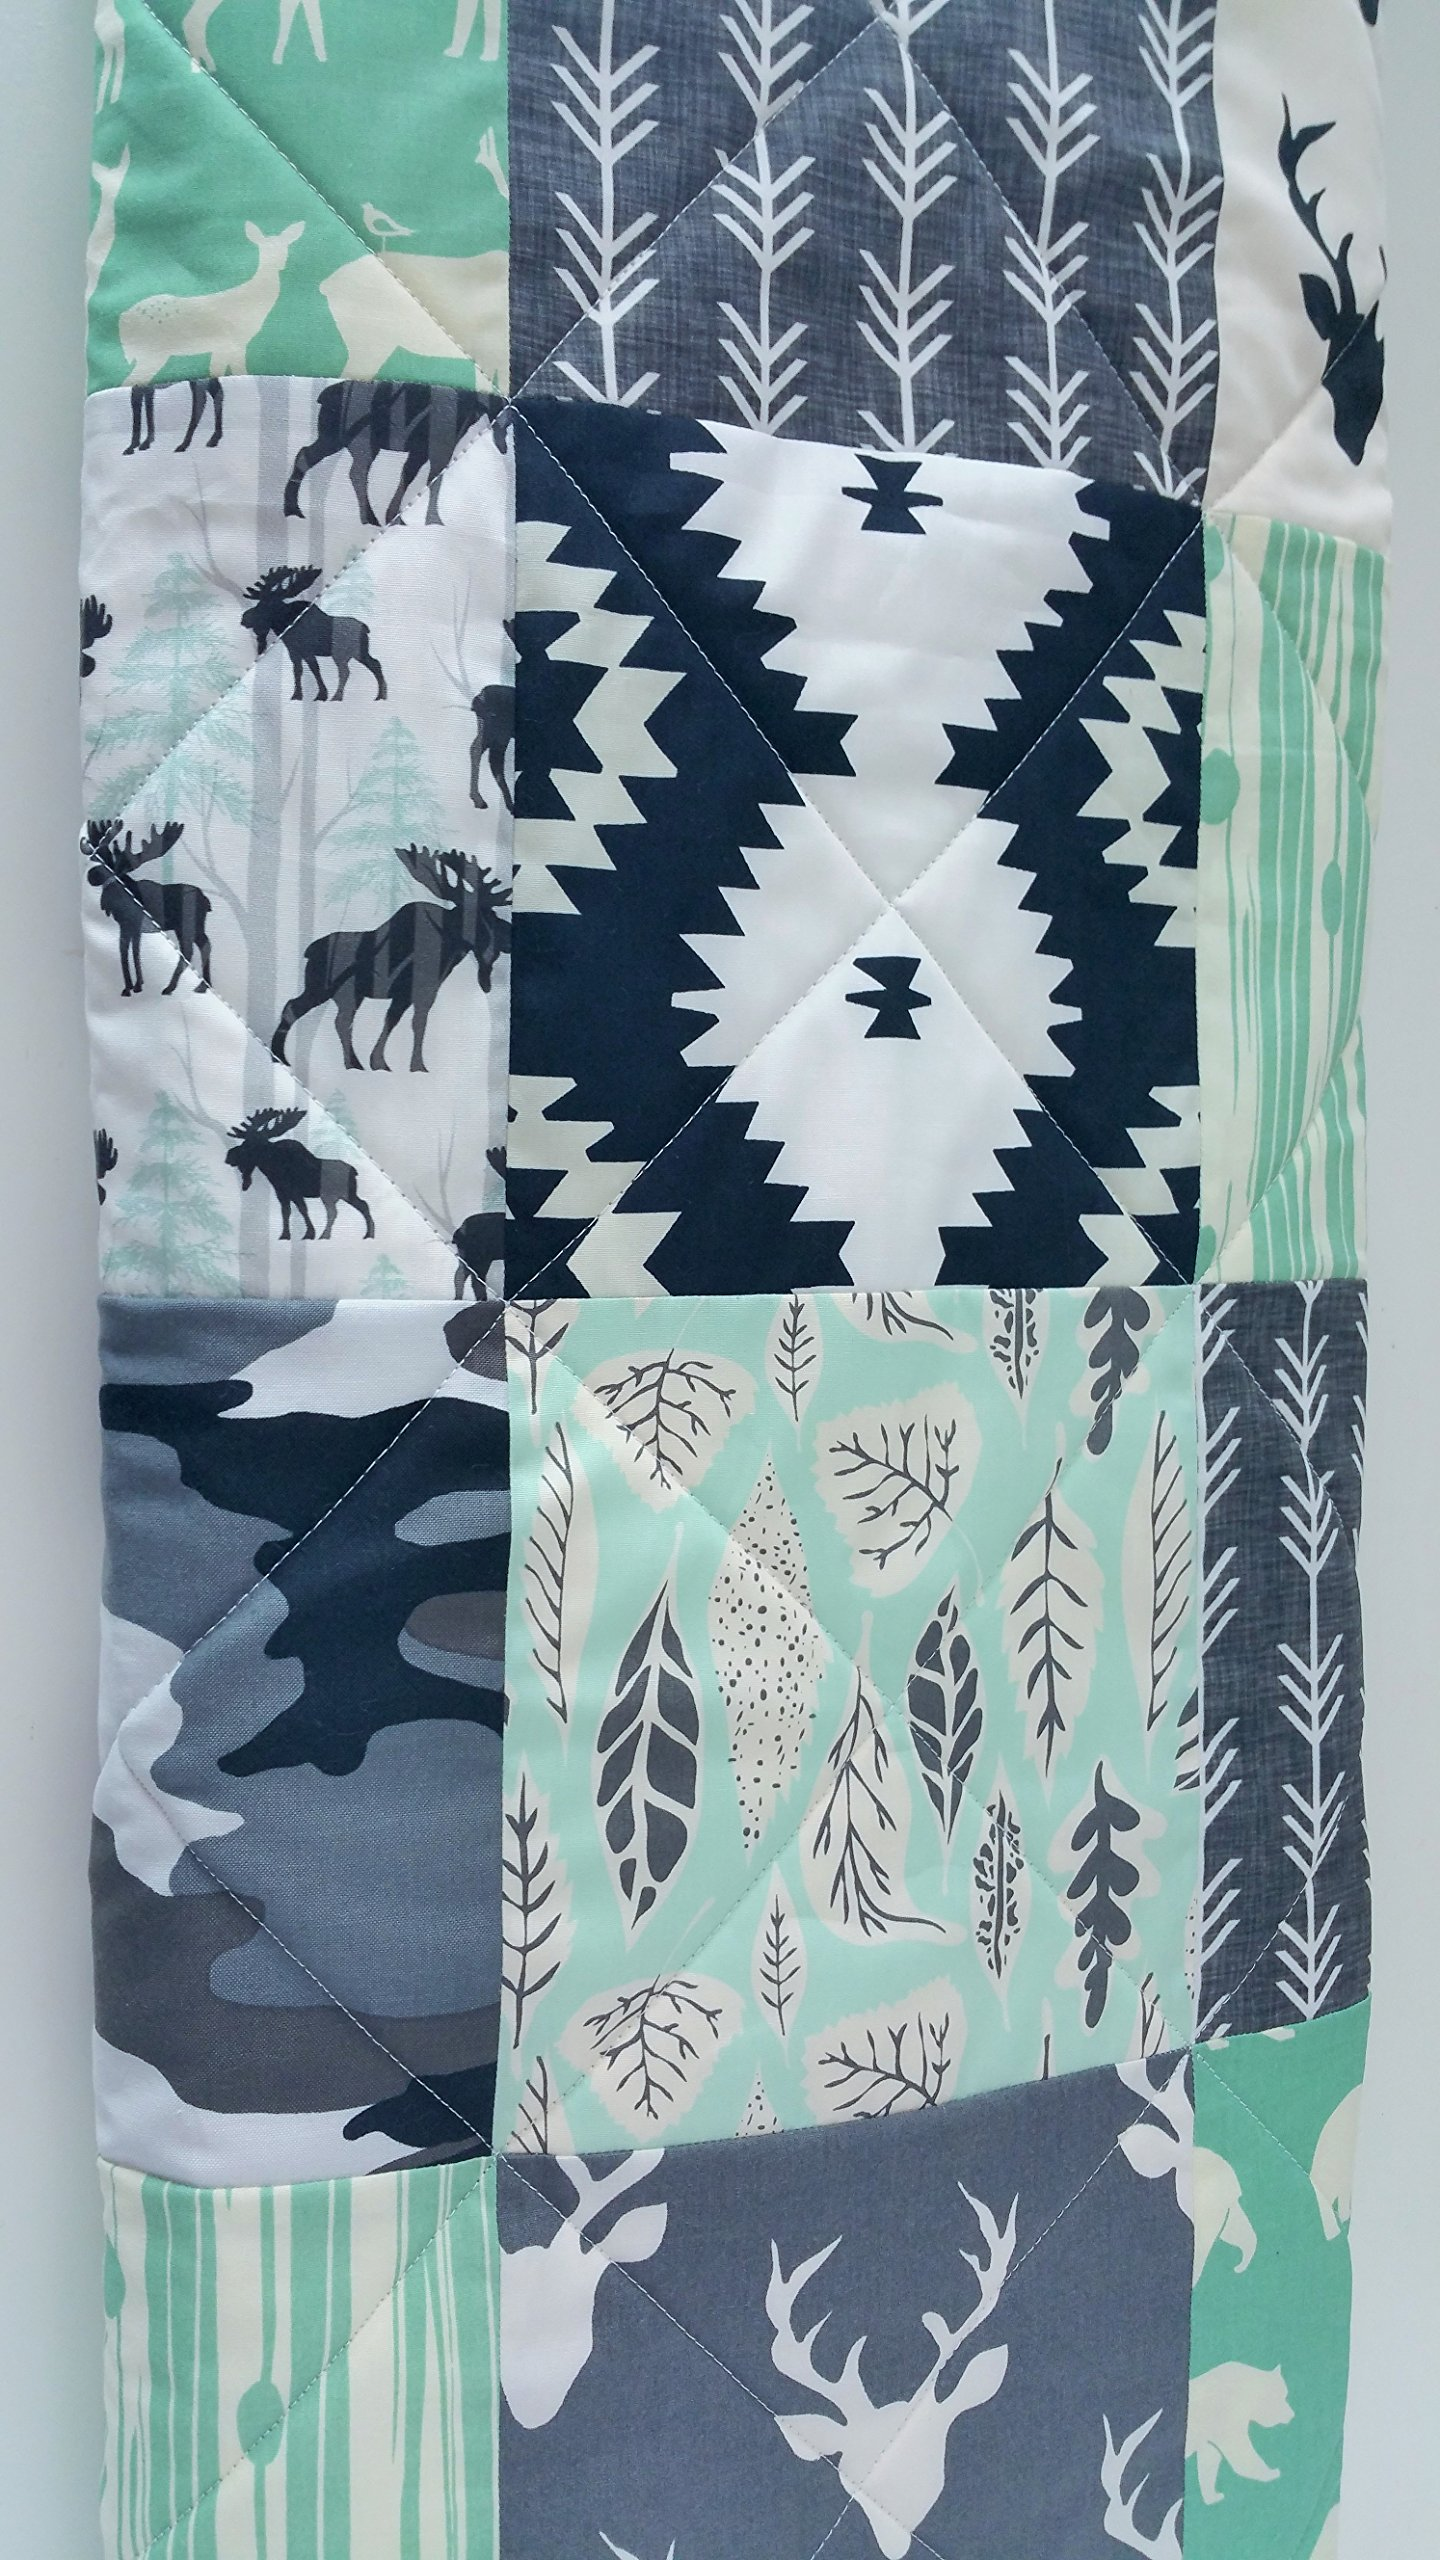 Rustic Woodland Aztec Black Mint and Charcoal Gray Baby Quilt